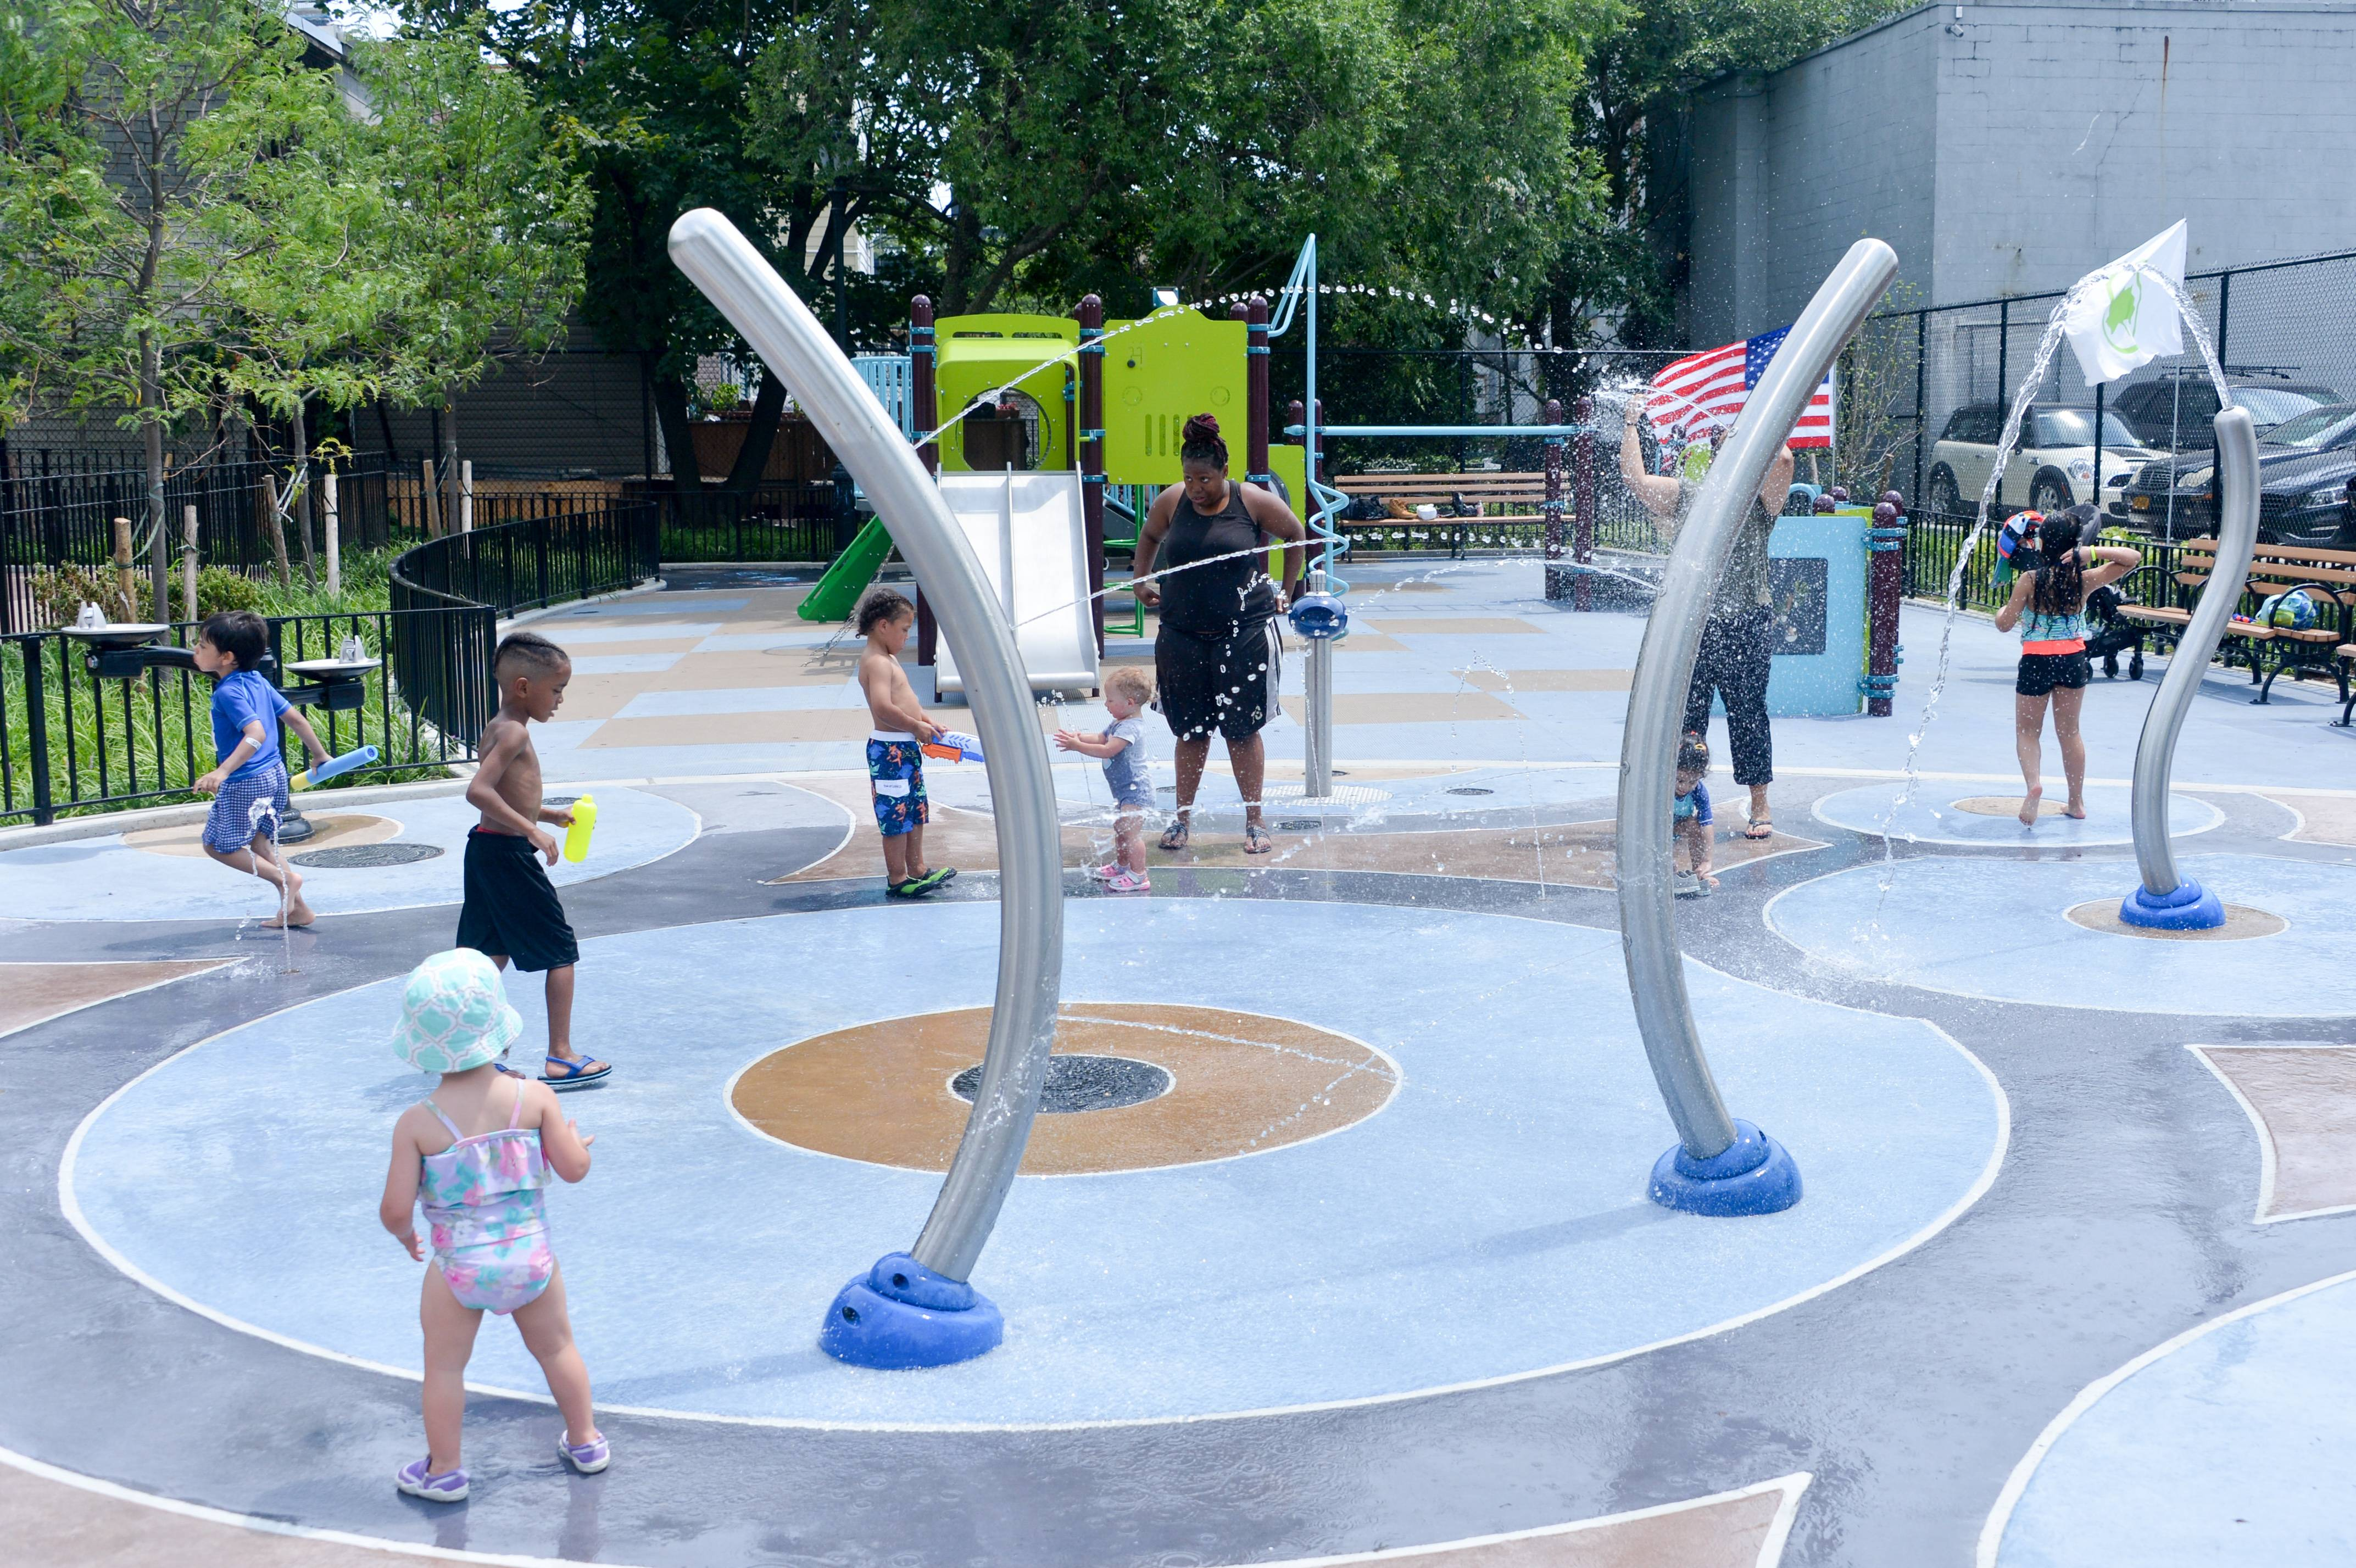 Spray showers and sprinklers in local parks are a great option to keep your kids cool if you can't make it to the pool or beach